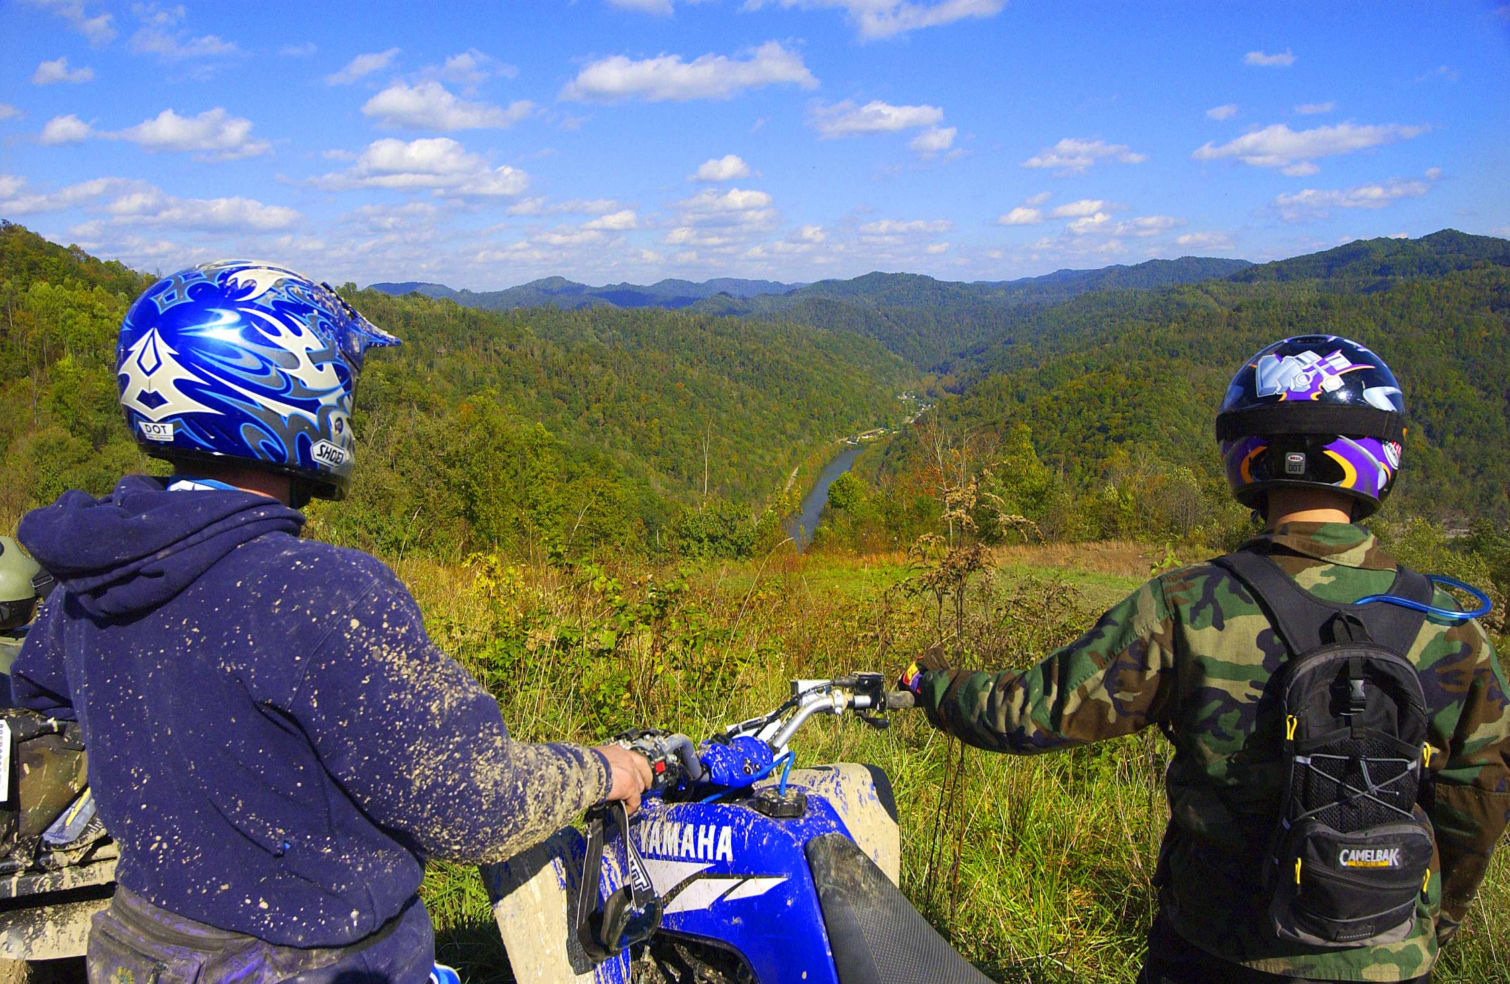 ATV Trails. Hatfield & McCoy, West Virginia